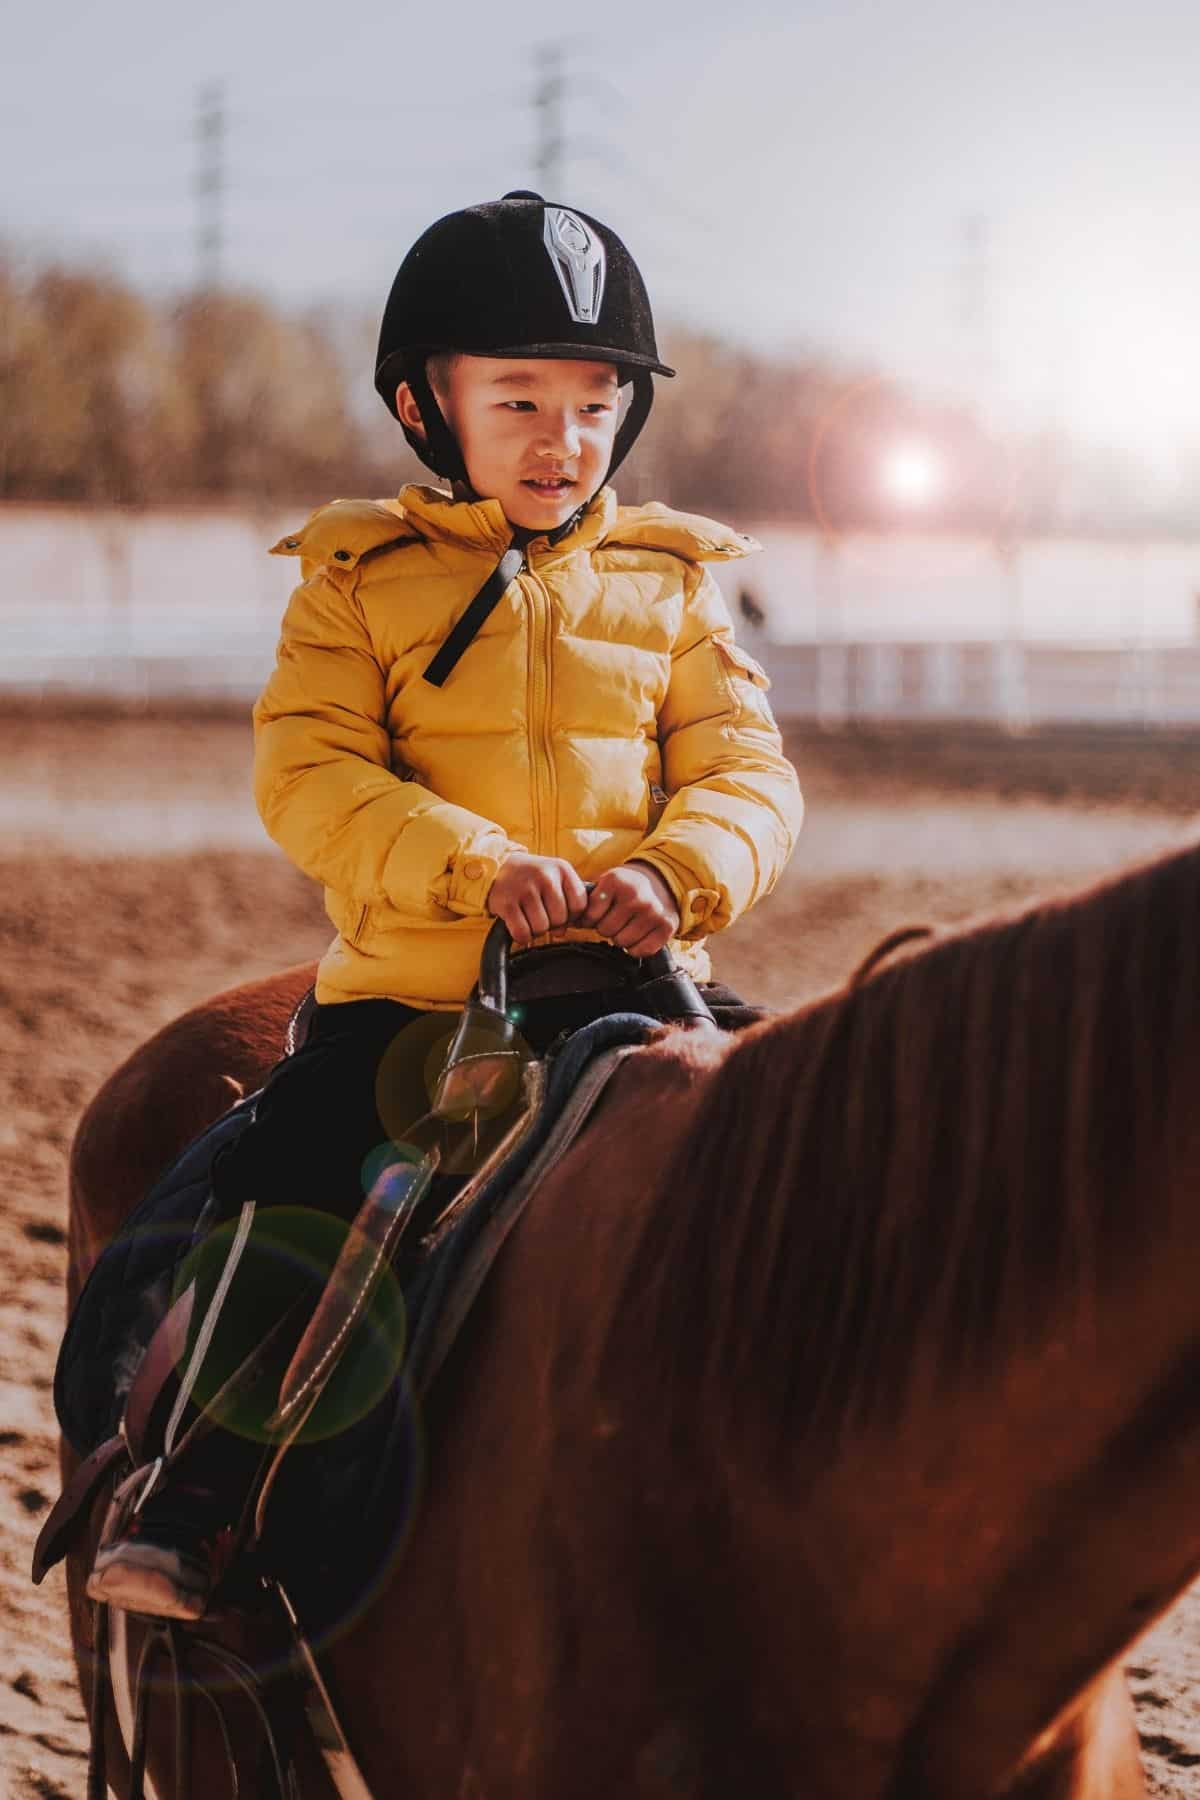 Child in yellow coat on horse